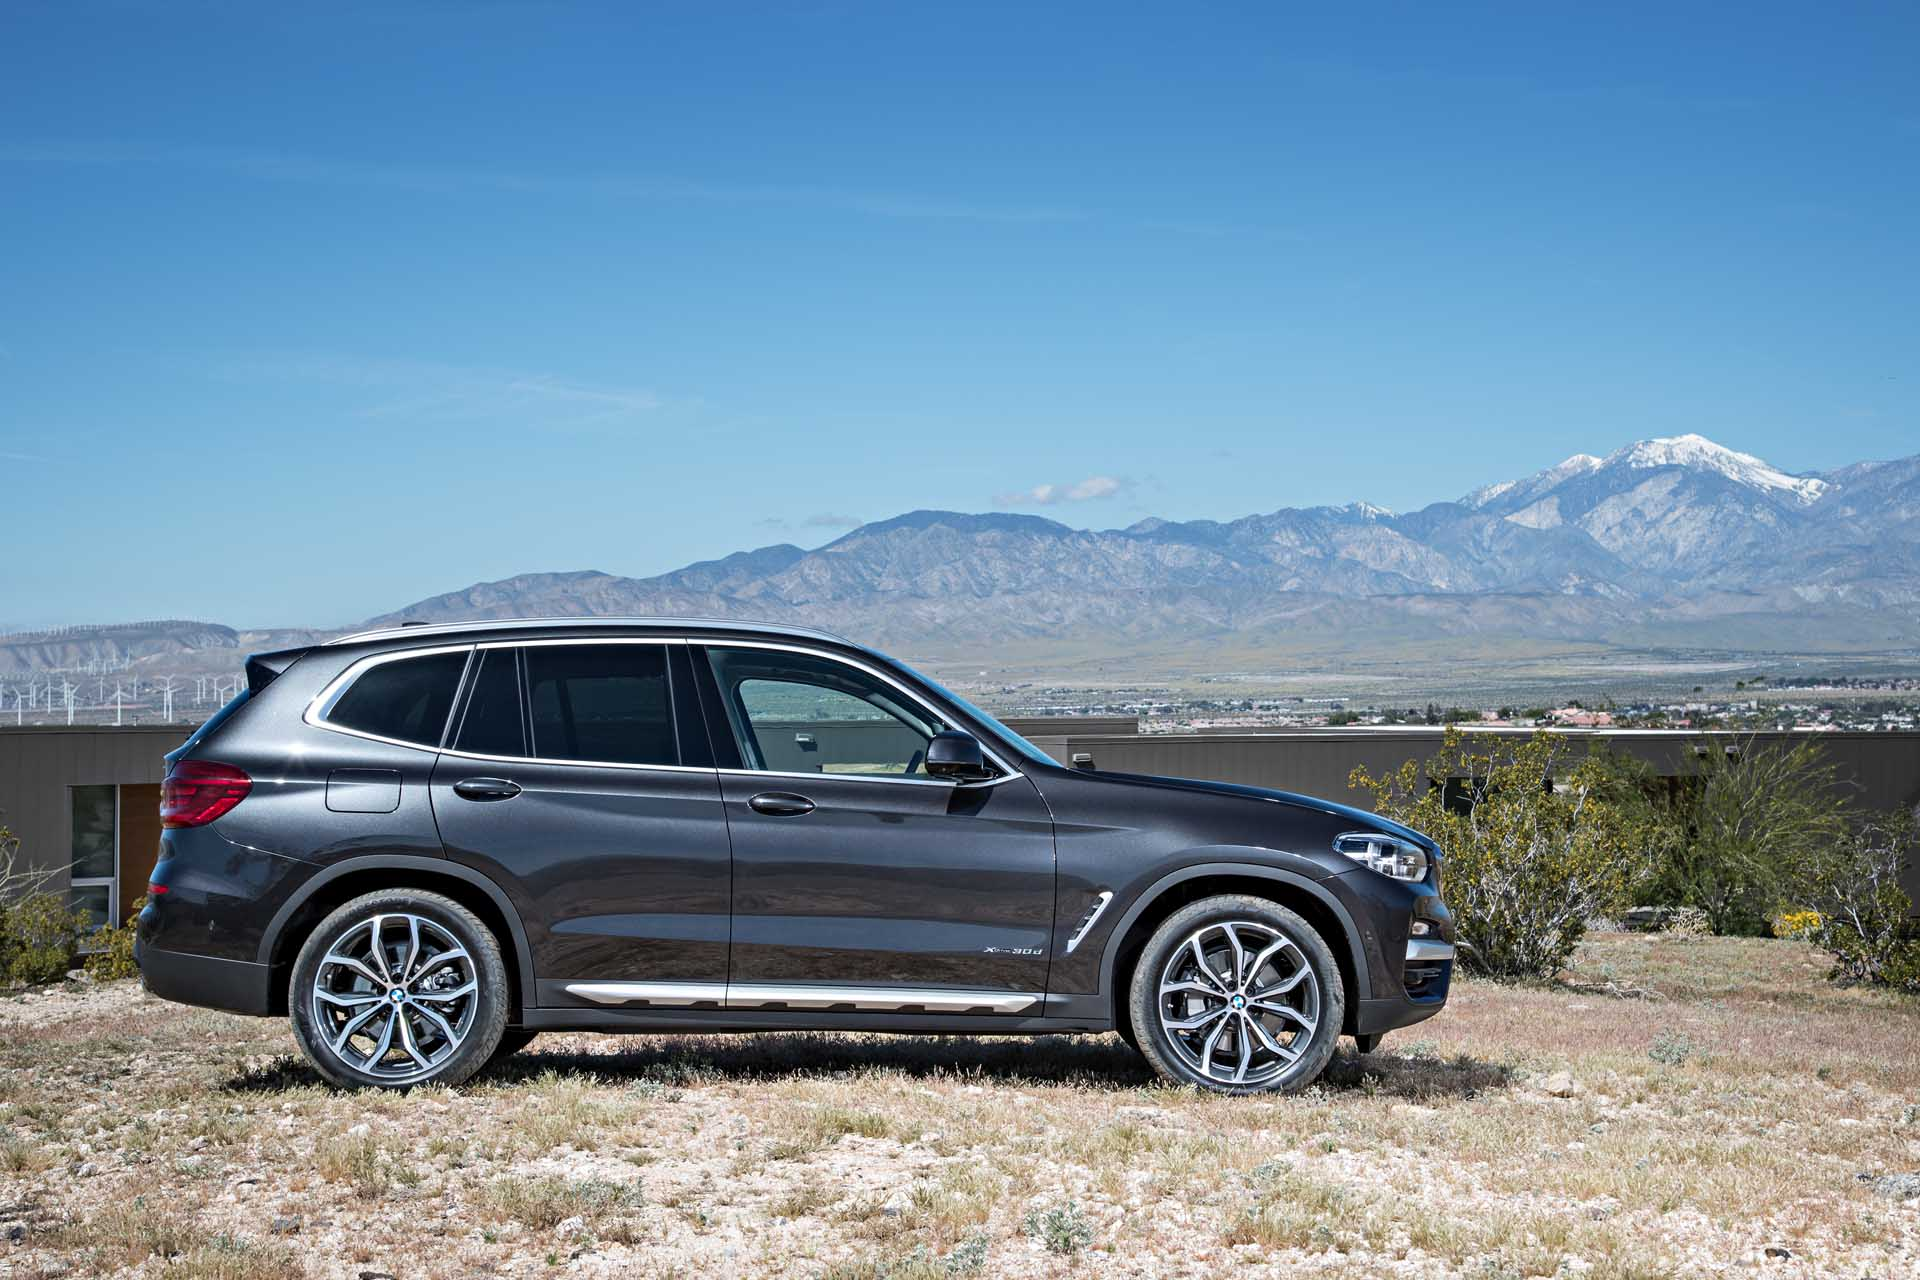 New And Used Bmw X3 Prices Photos Reviews Specs The Car Connection